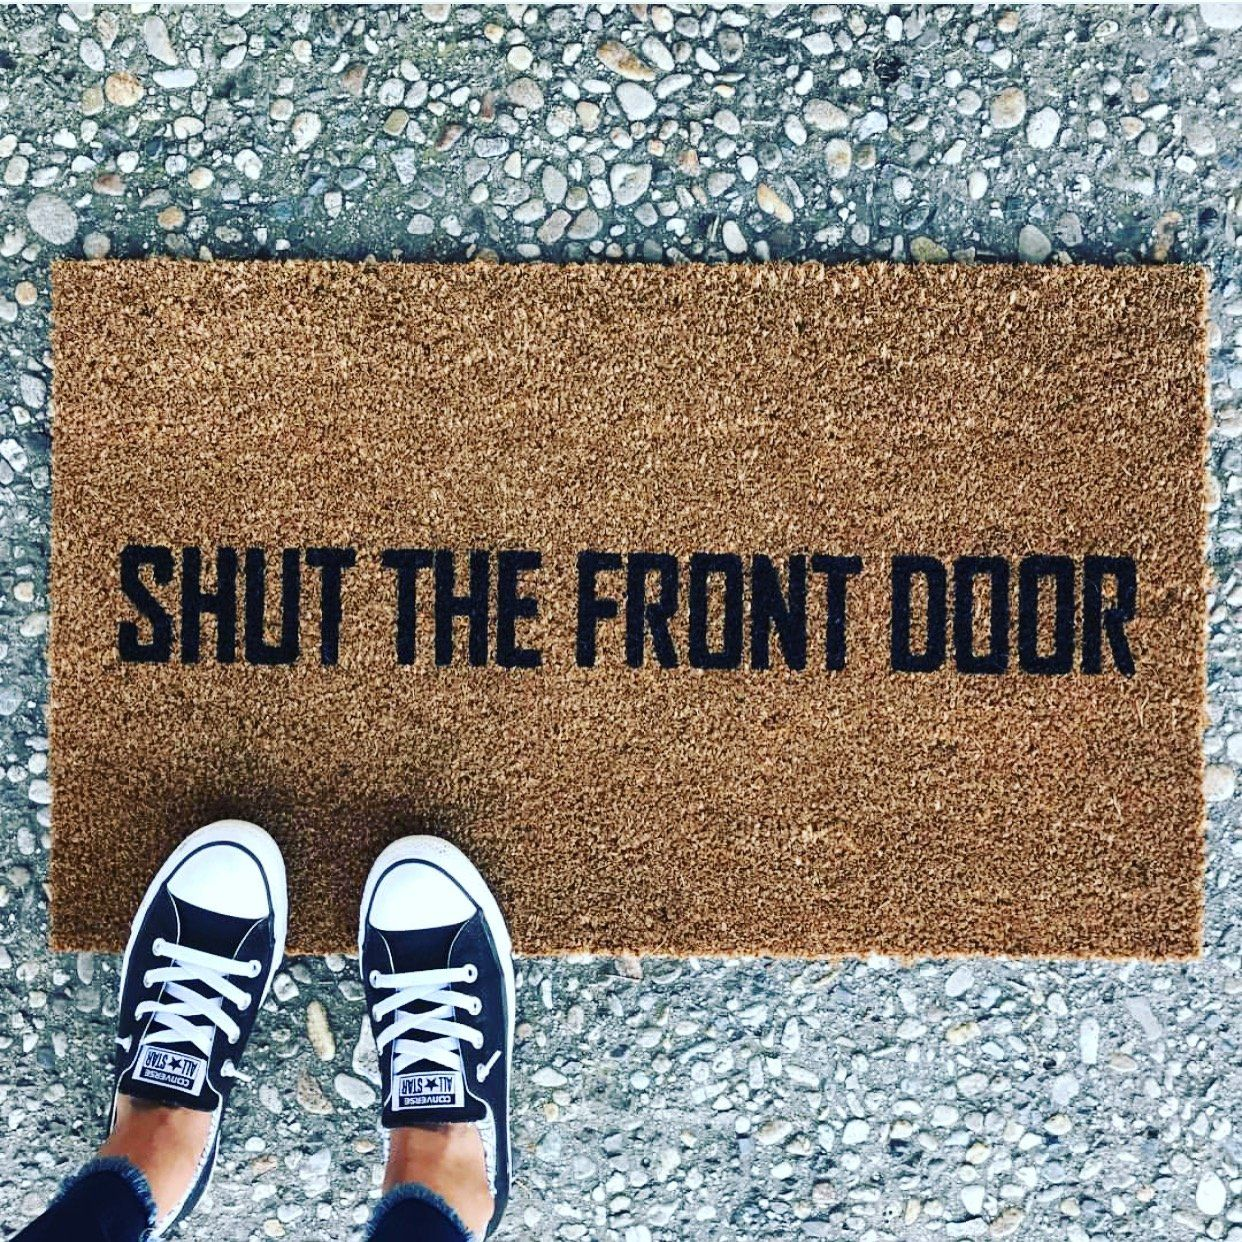 isla by can you mats welcome wipe art damngooddoormats ca mat shop your doormats rude funny outdoor fullxfull